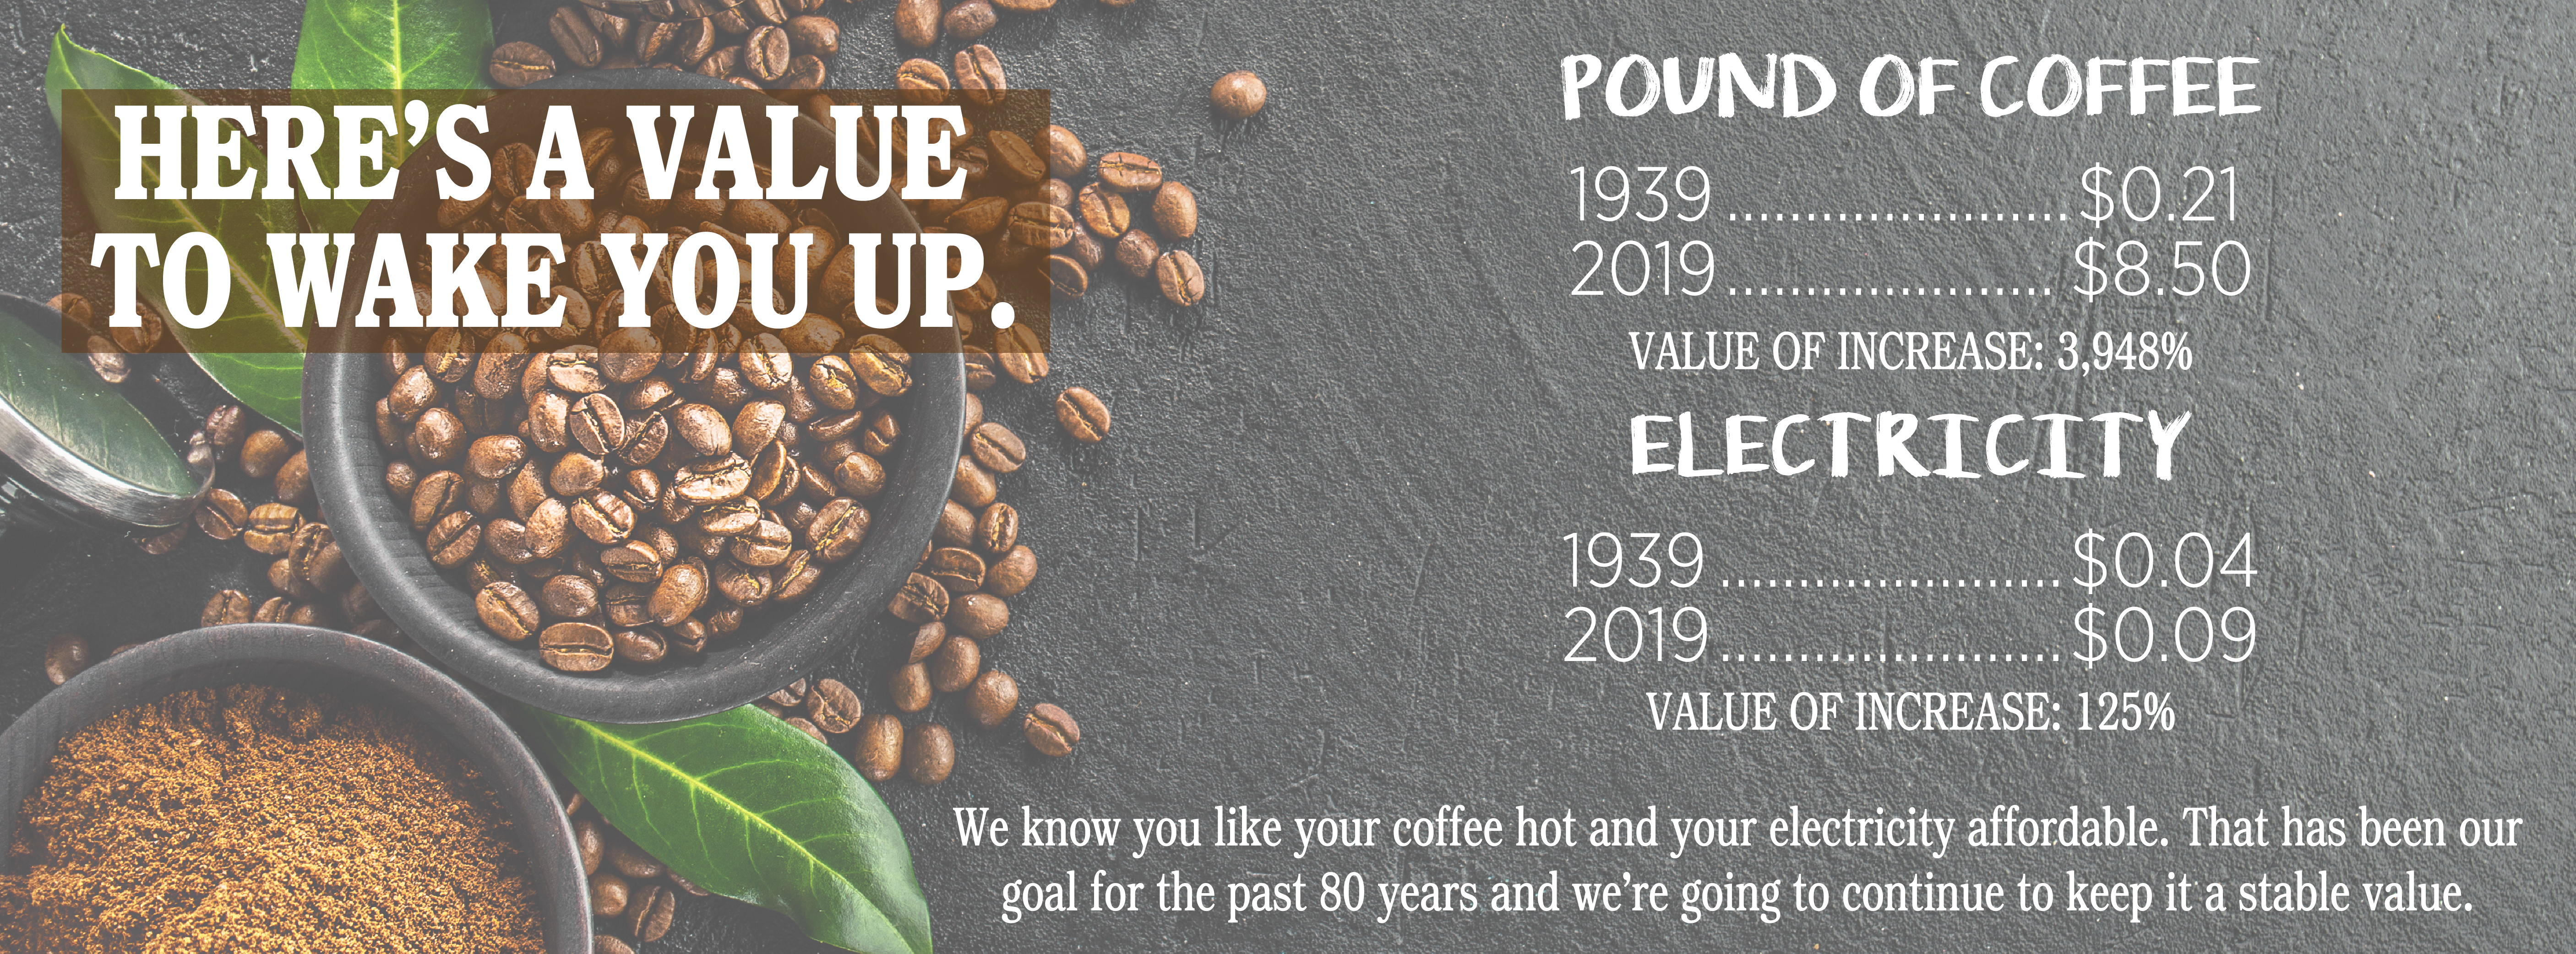 Value of coffee and electricity